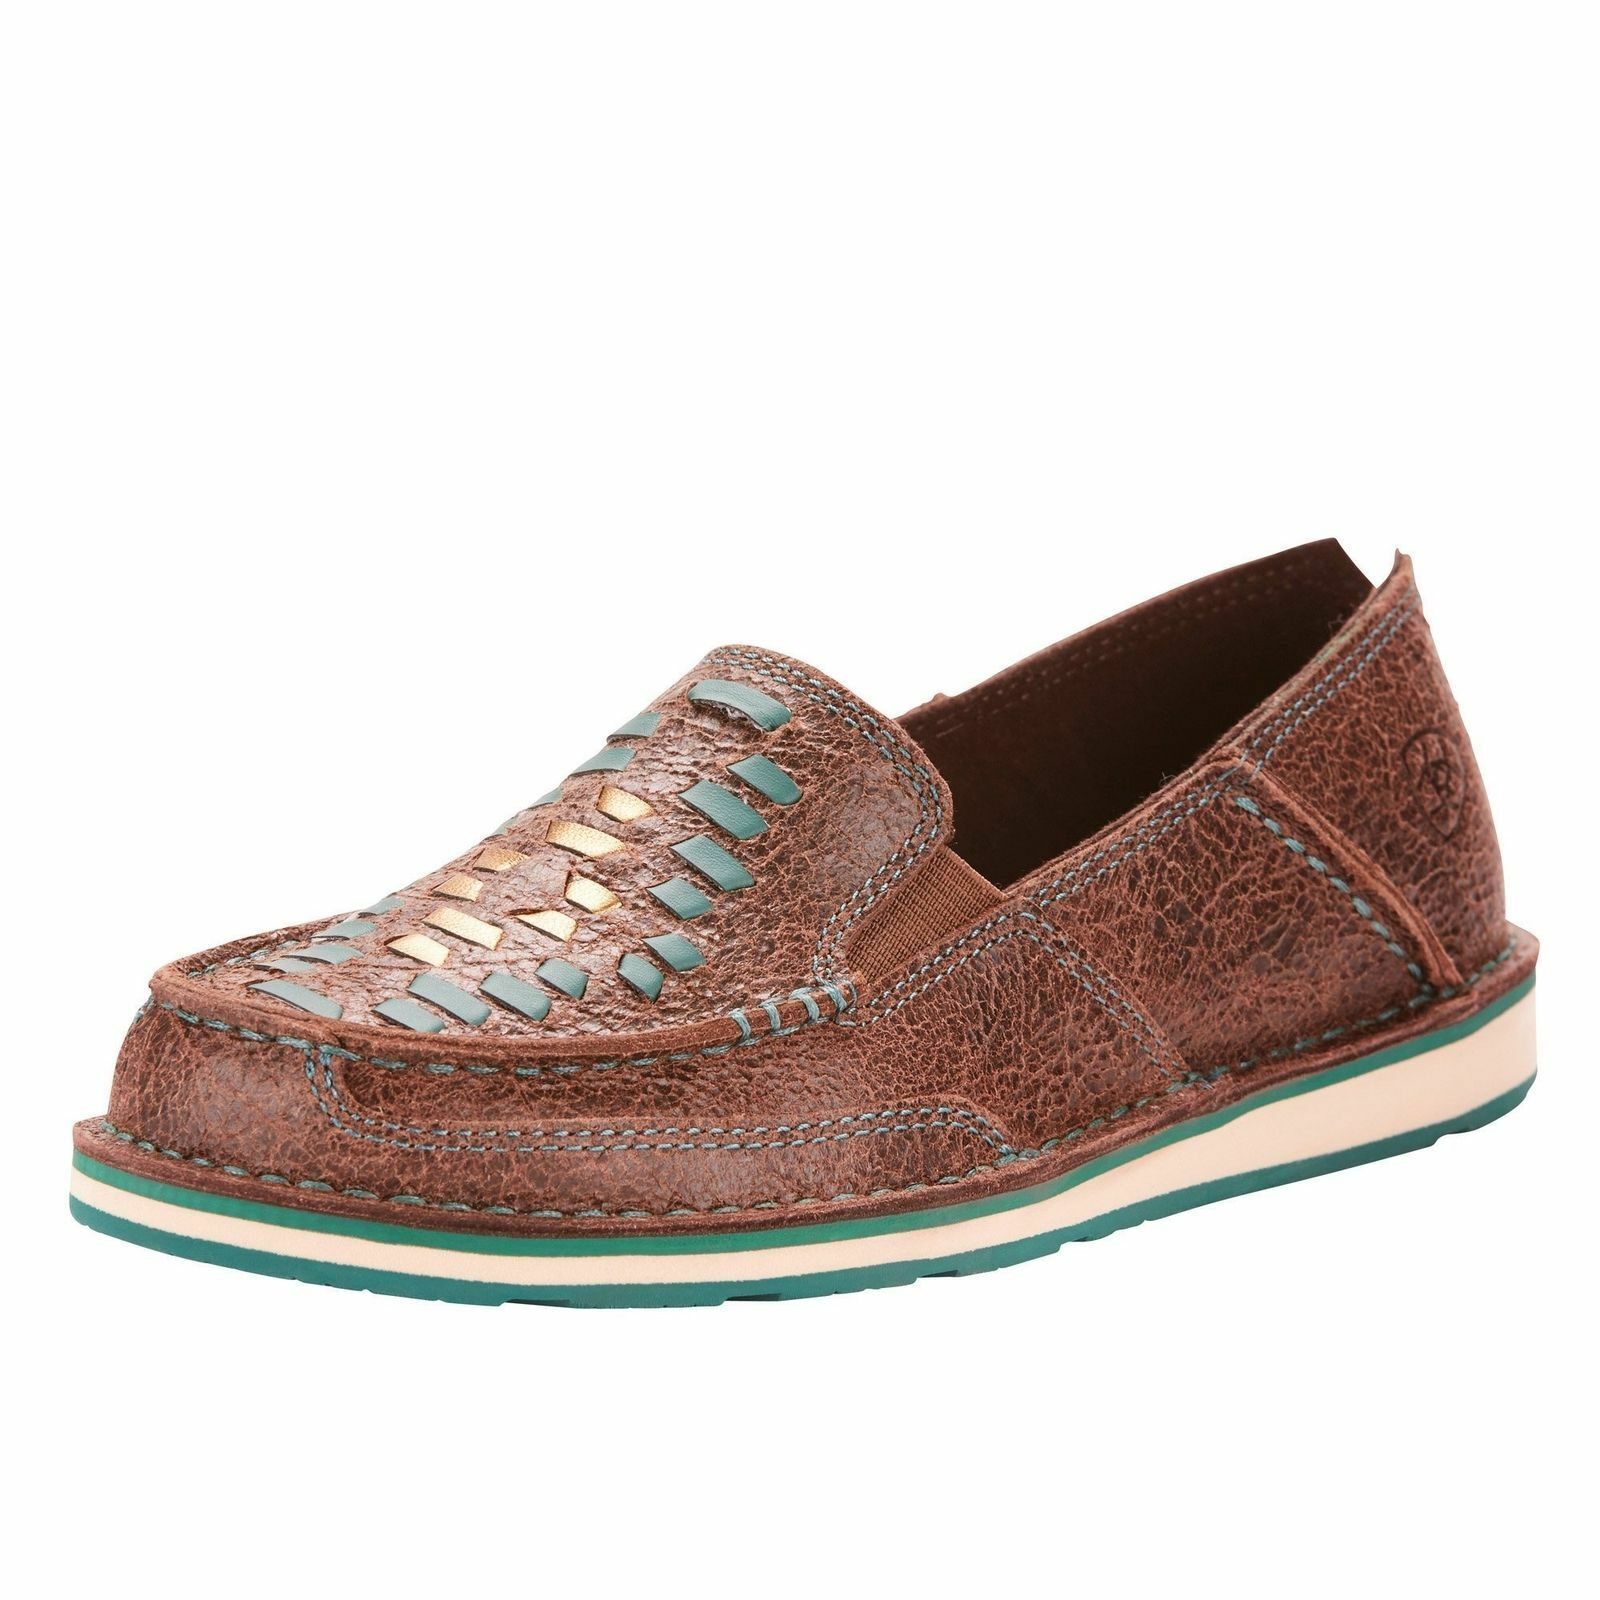 Ariat Wouomo  Marronee Rebel Turquoise Weave Cruisers 10025023  per offrirti un piacevole shopping online